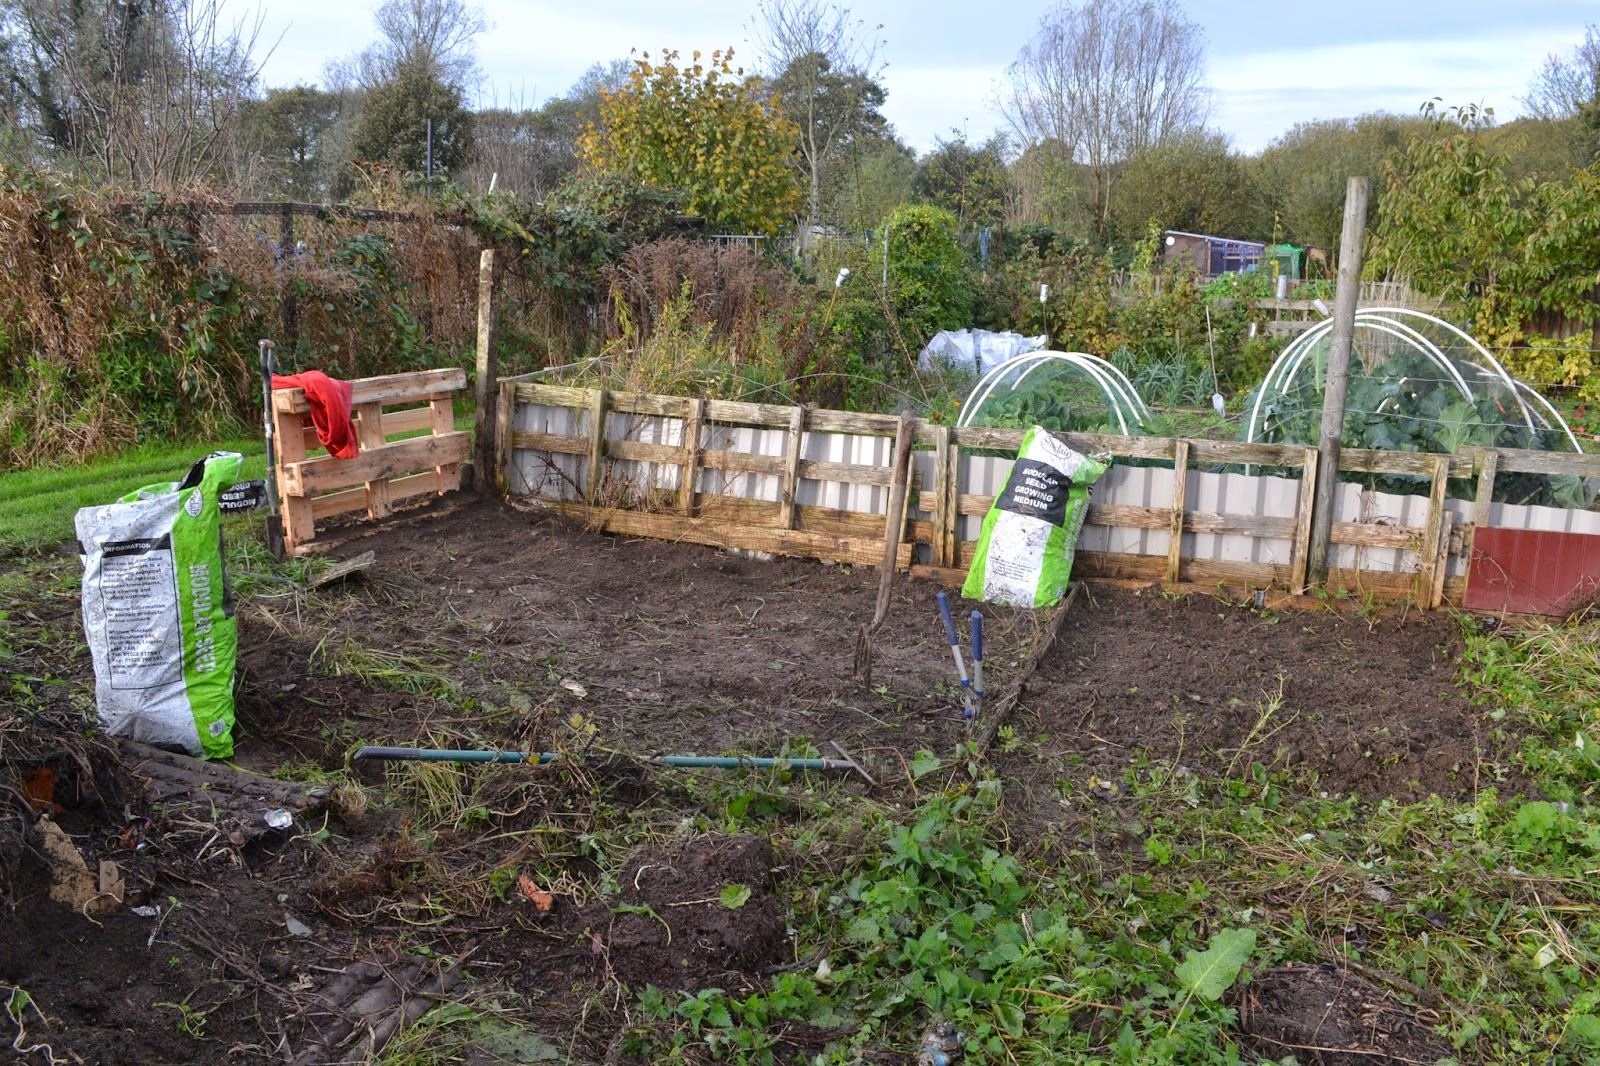 Norwich Allotment